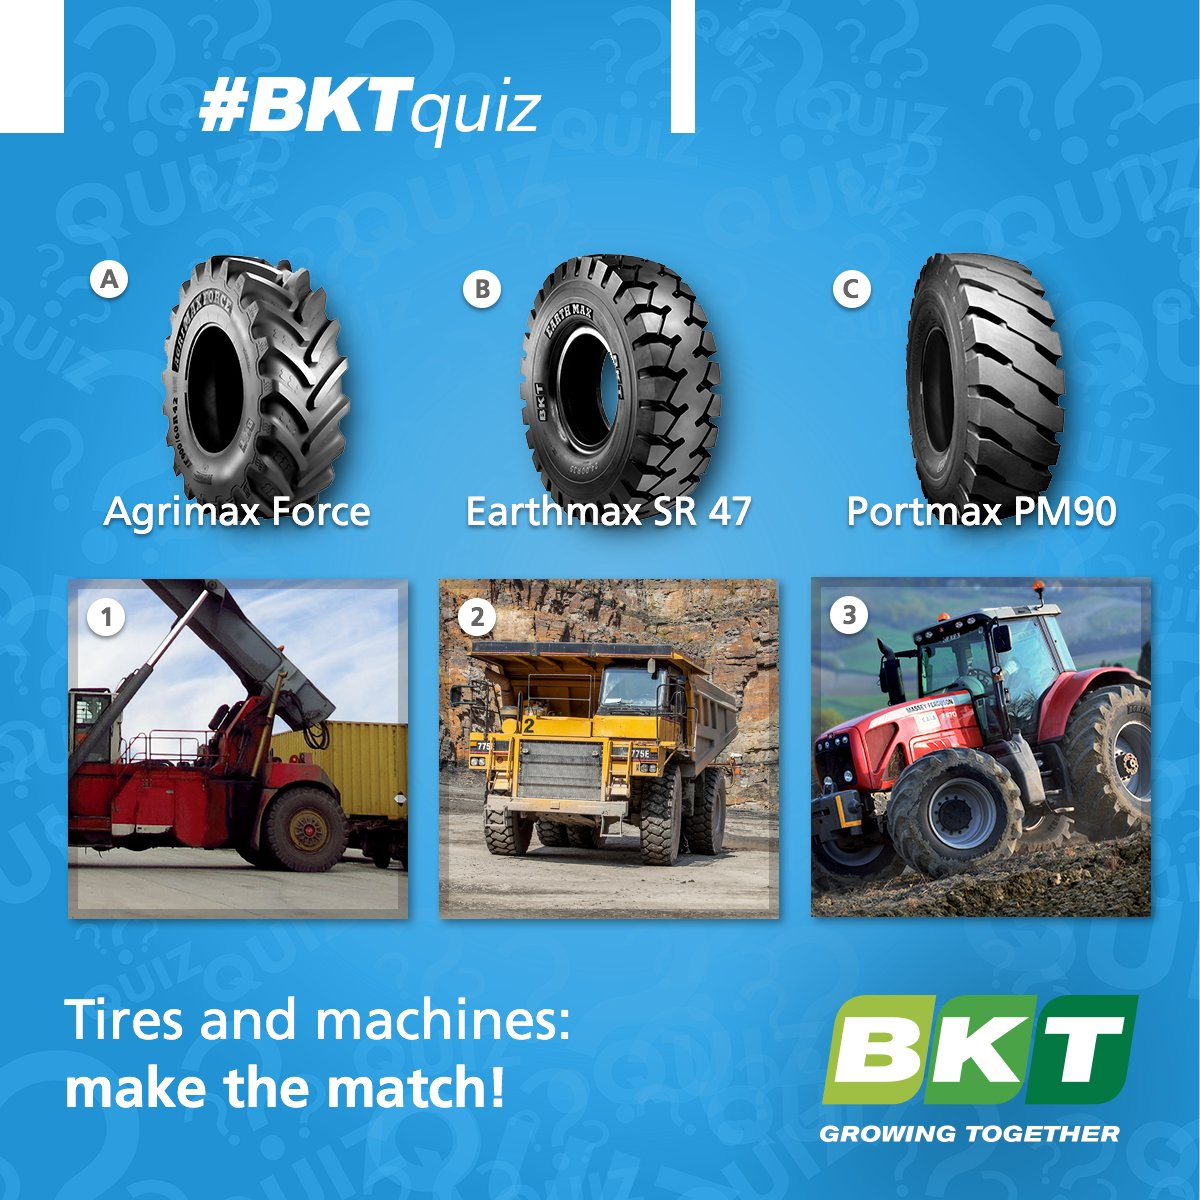 #BKTquiz Can you find out which tire fits each #machine? #tires #quiz https://t.co/QVngB8IAc0